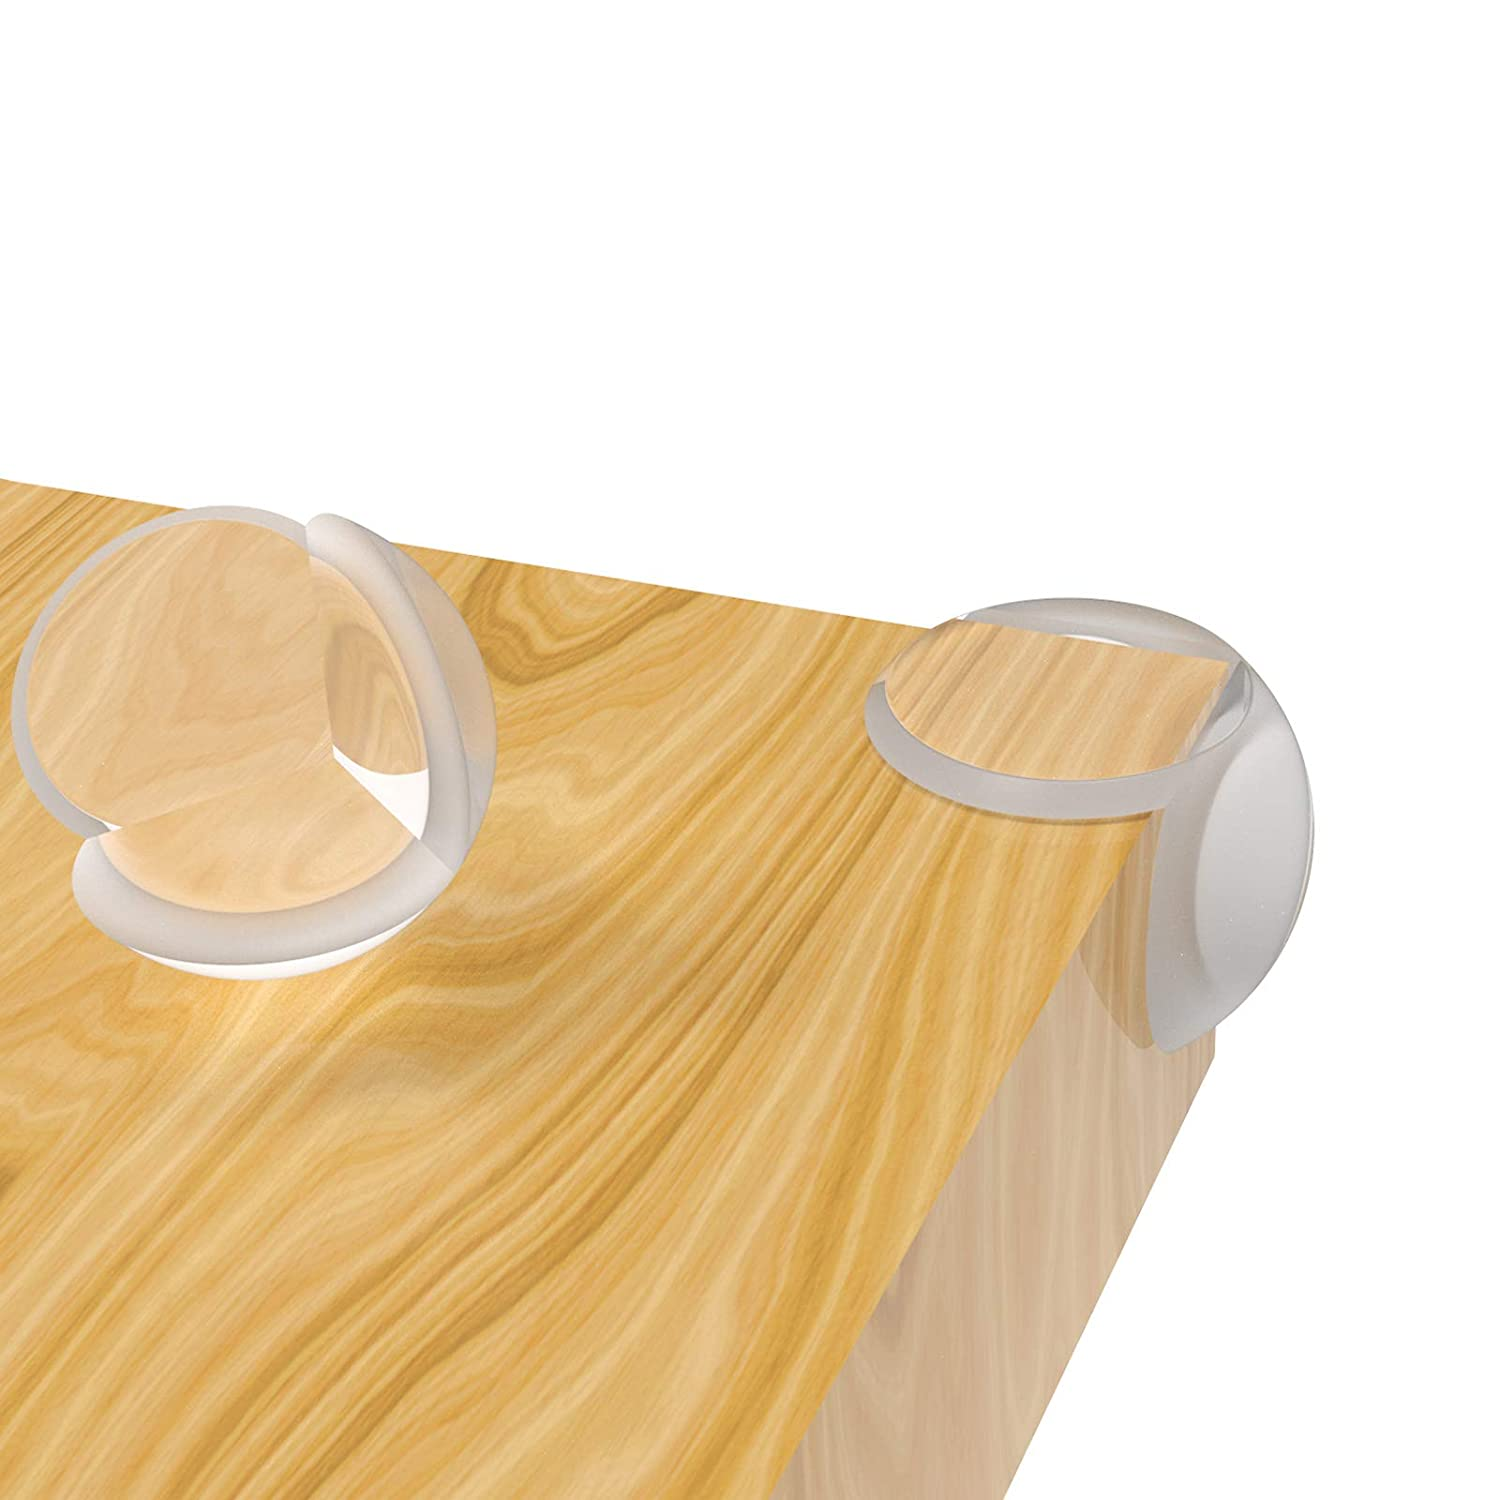 Corner Protector, Baby Proofing Corner Guards,Table Corner Protectors for Baby (24 Pack) by Anairo